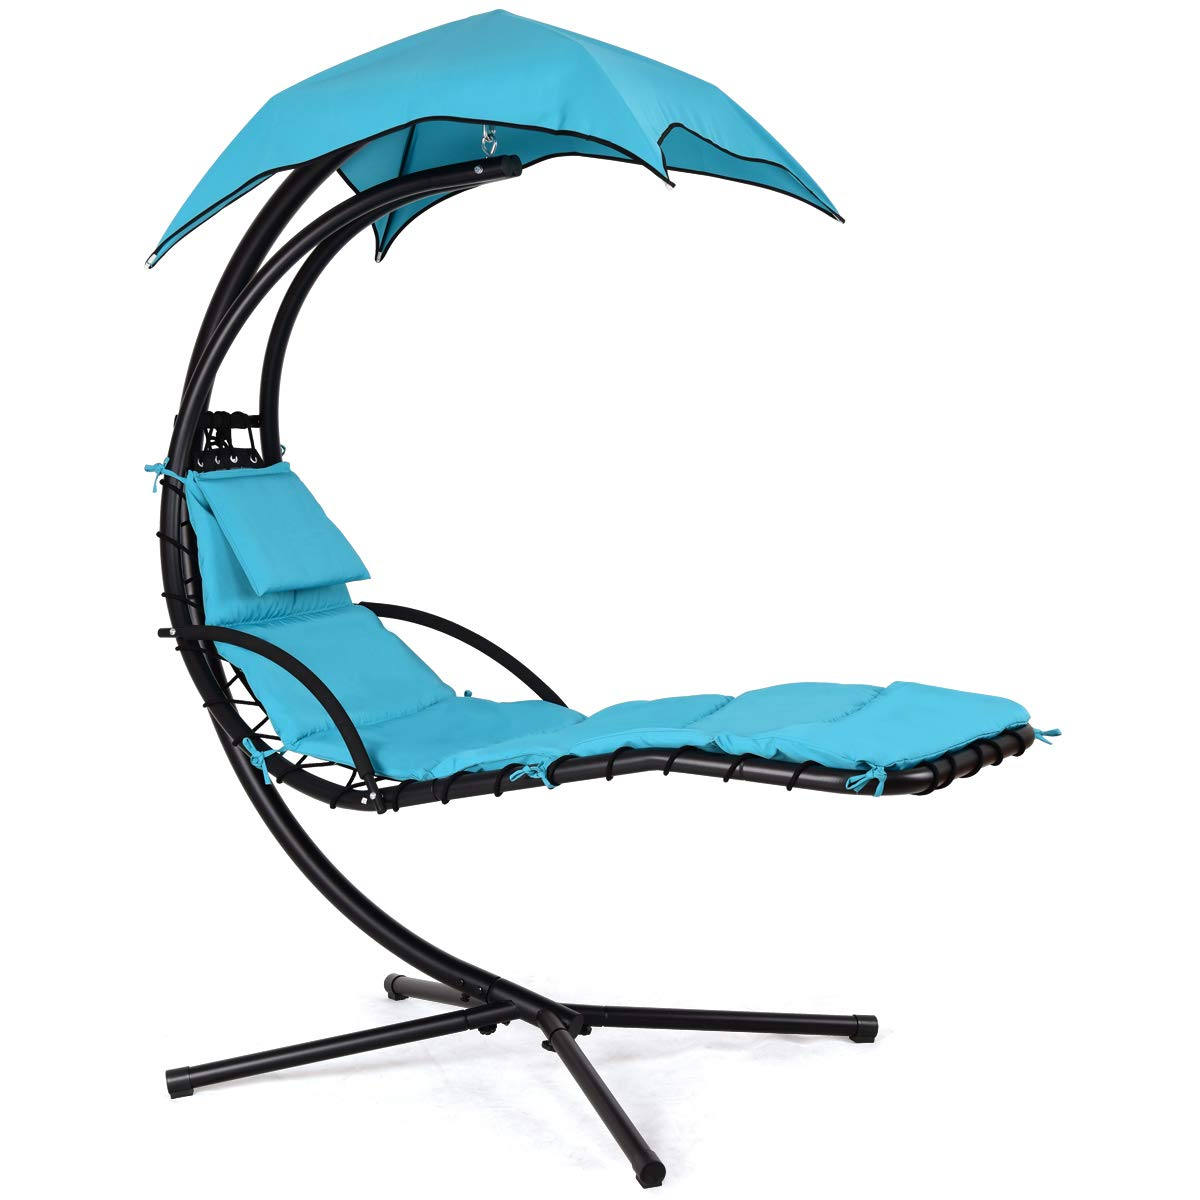 Giantex Hanging Chaise Lounger Chair Arc Stand Porch Swing Hammock Chair W/Canopy Large Weight Capacity (Blue)